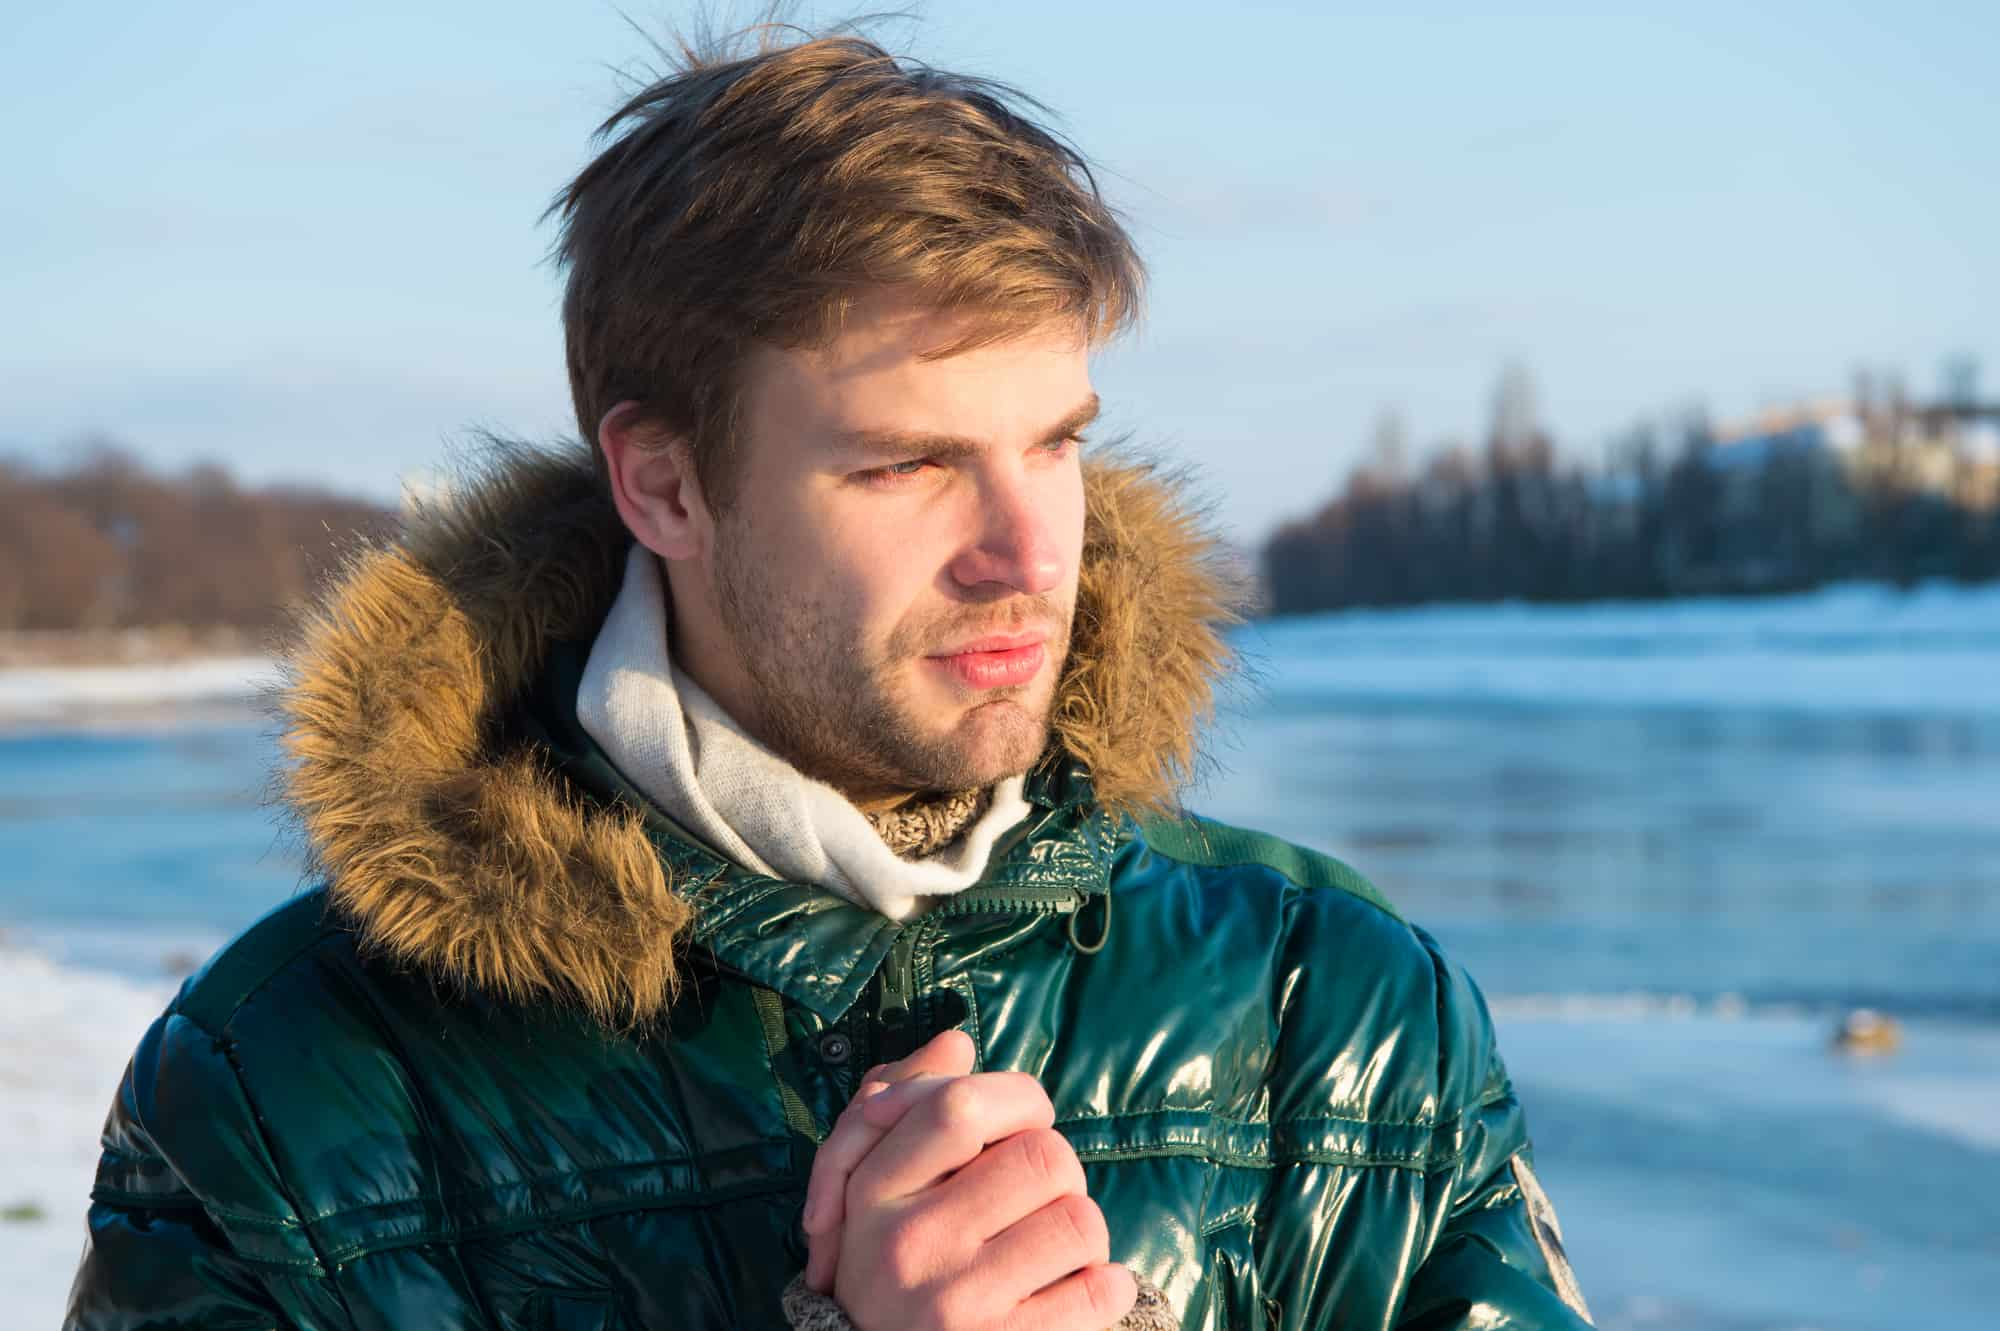 What To Look For In A Men's Winter Jacket